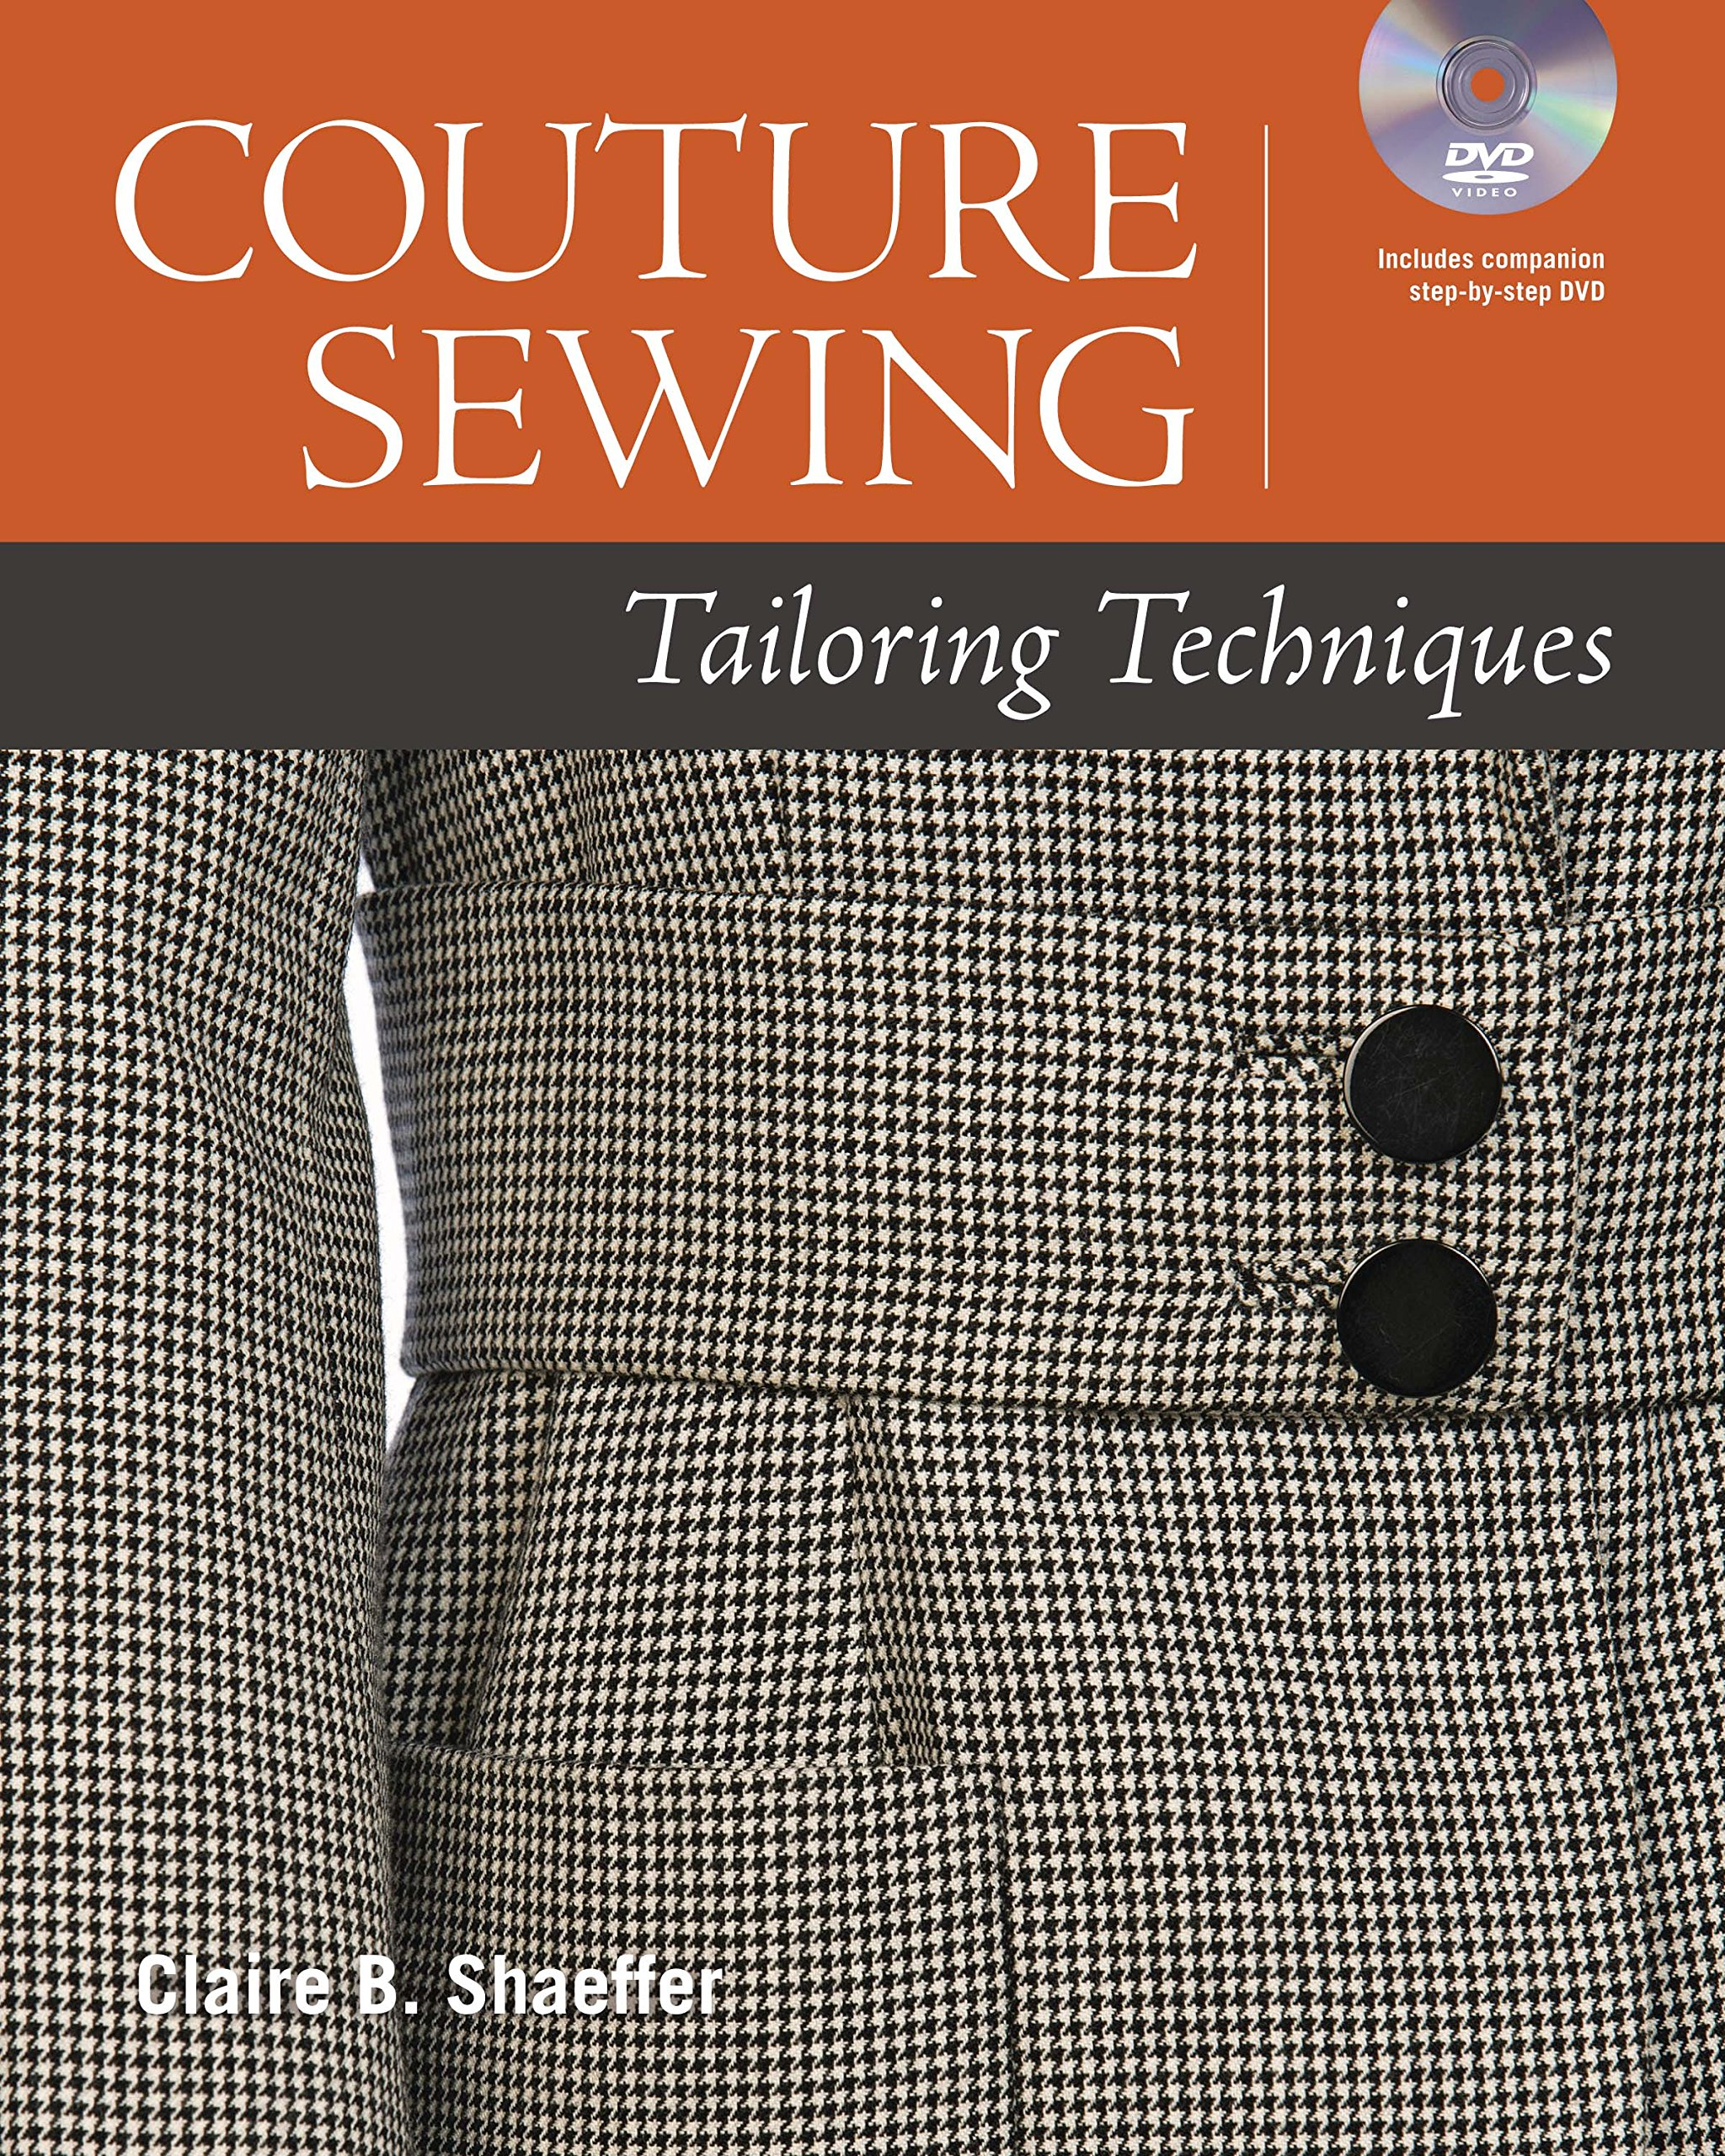 Couture Sewing: Tailoring Techniques